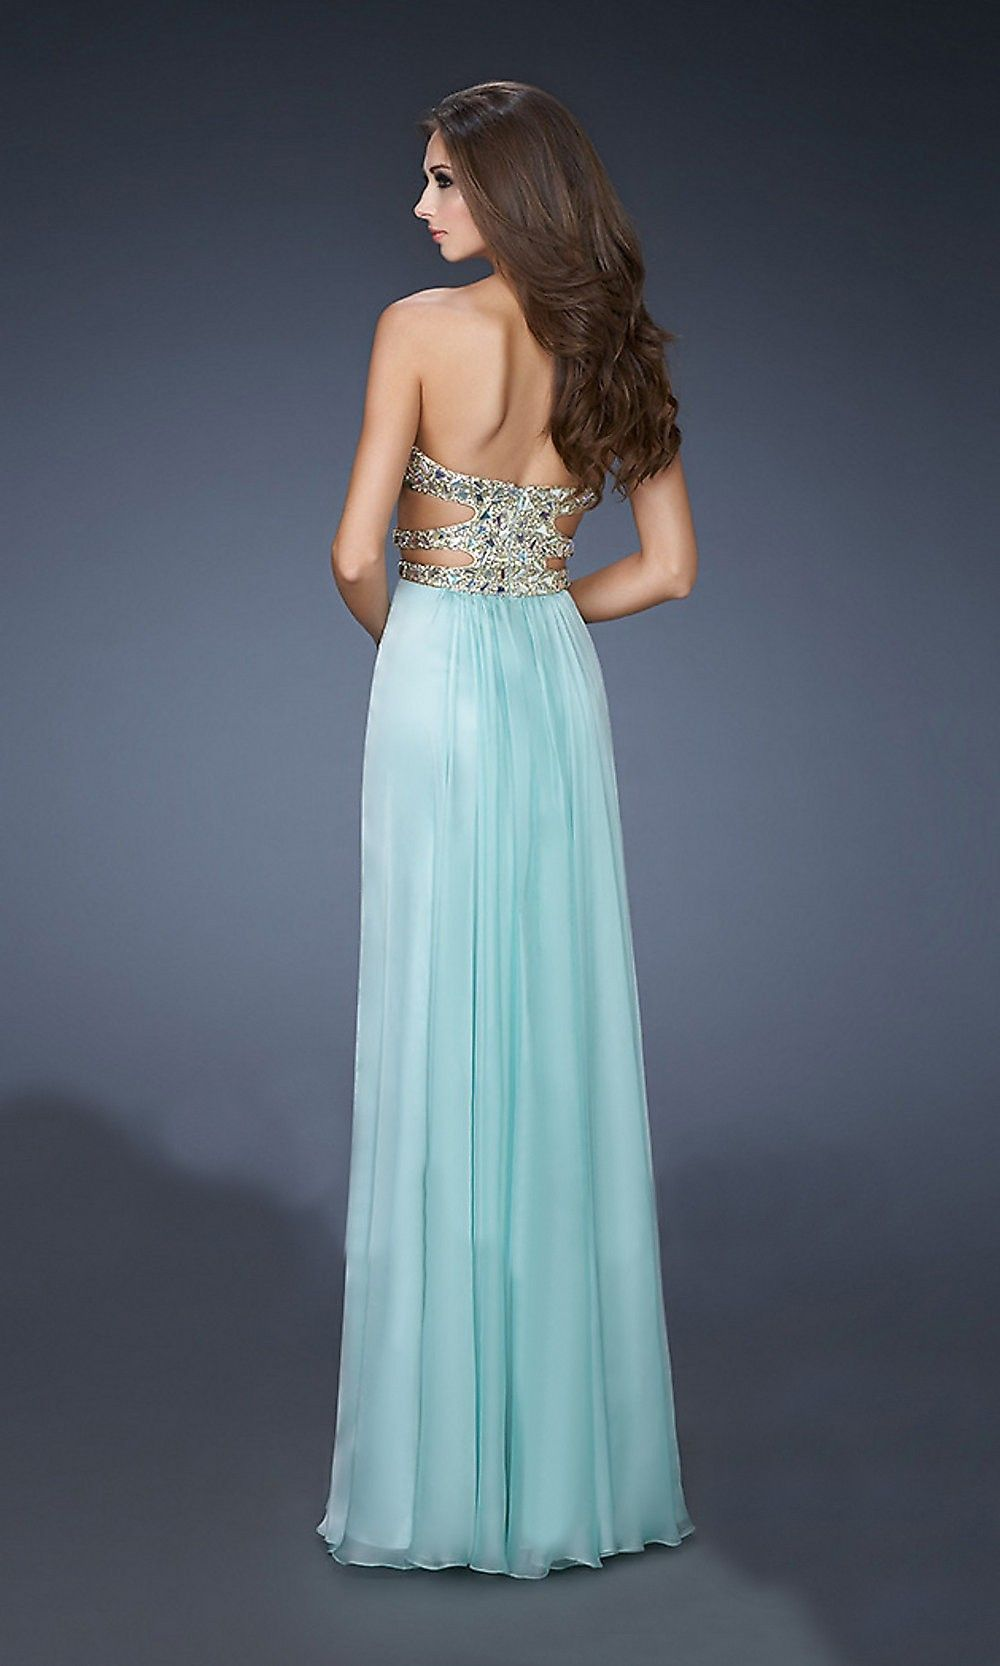 Collection Floor Length Prom Dress Pictures - Reikian